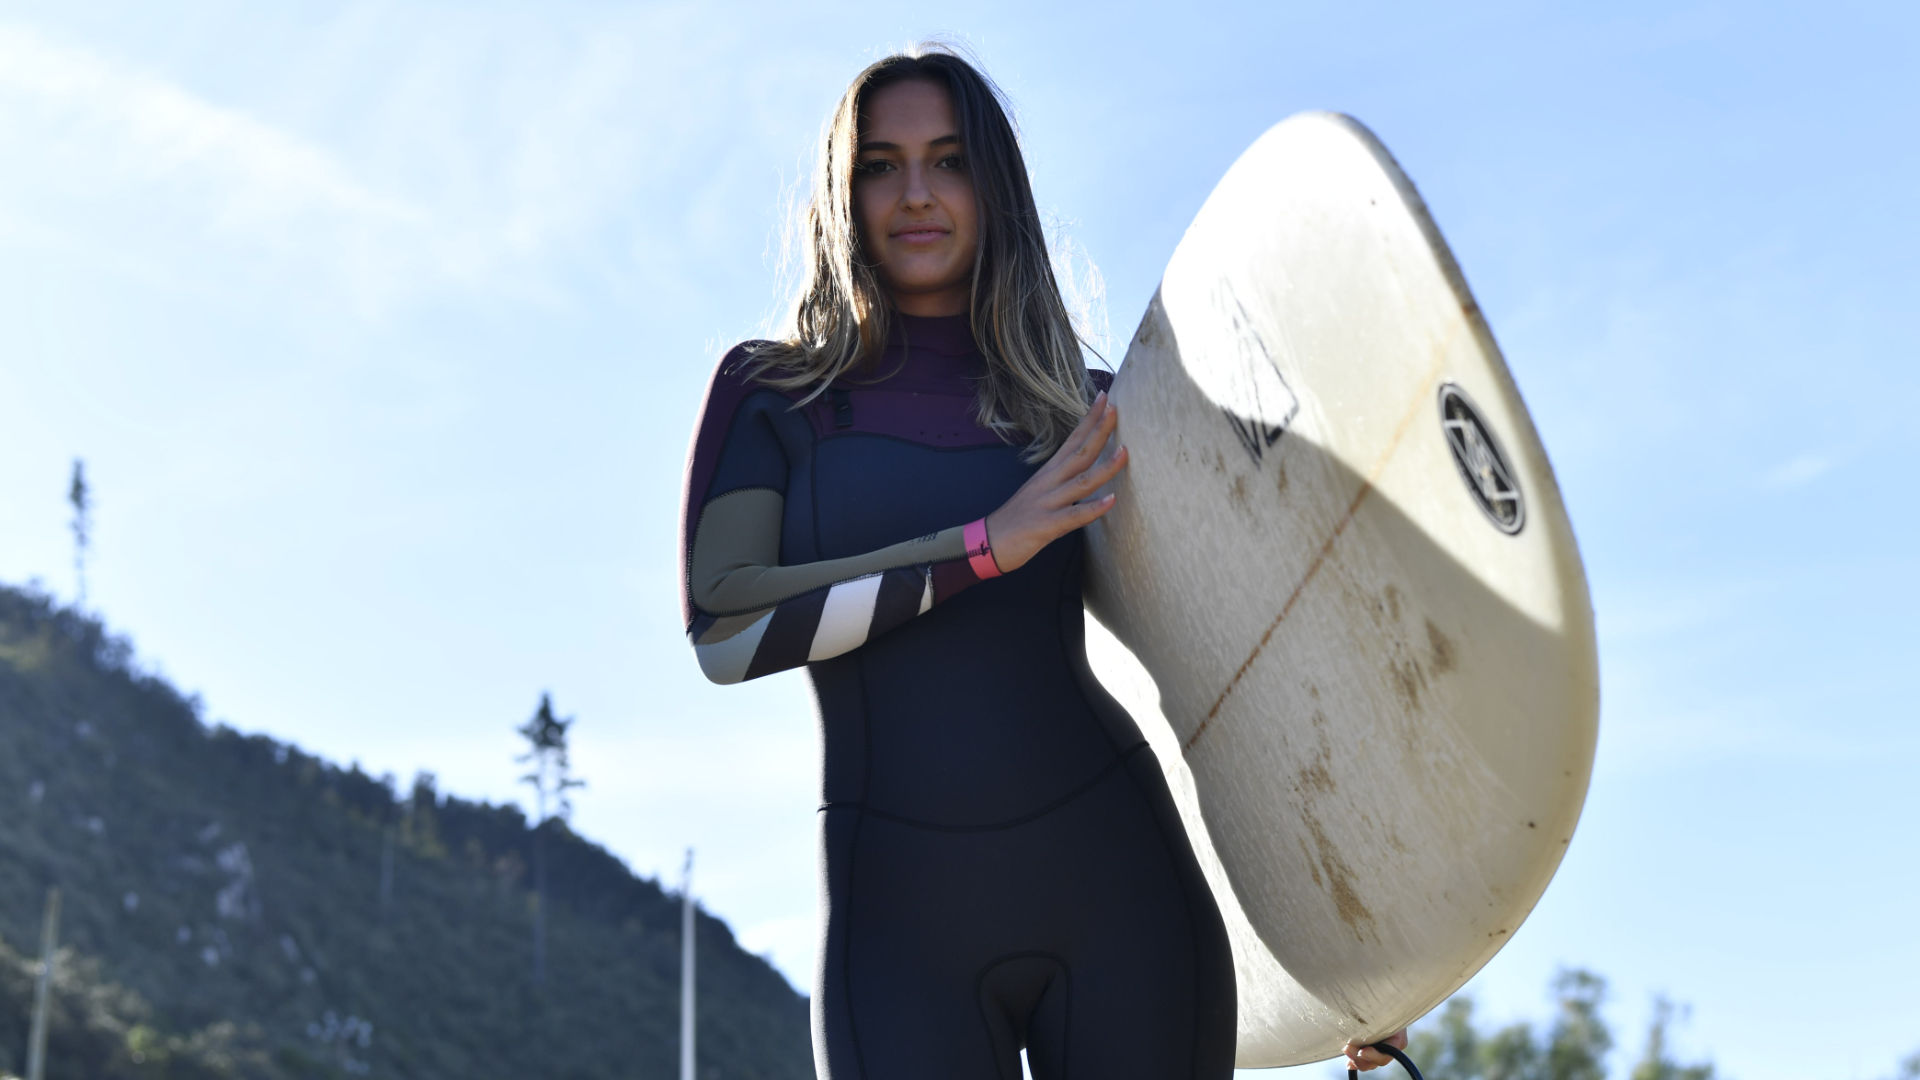 Surfer girl about to go in colder waters with a 3/2 wetsuit